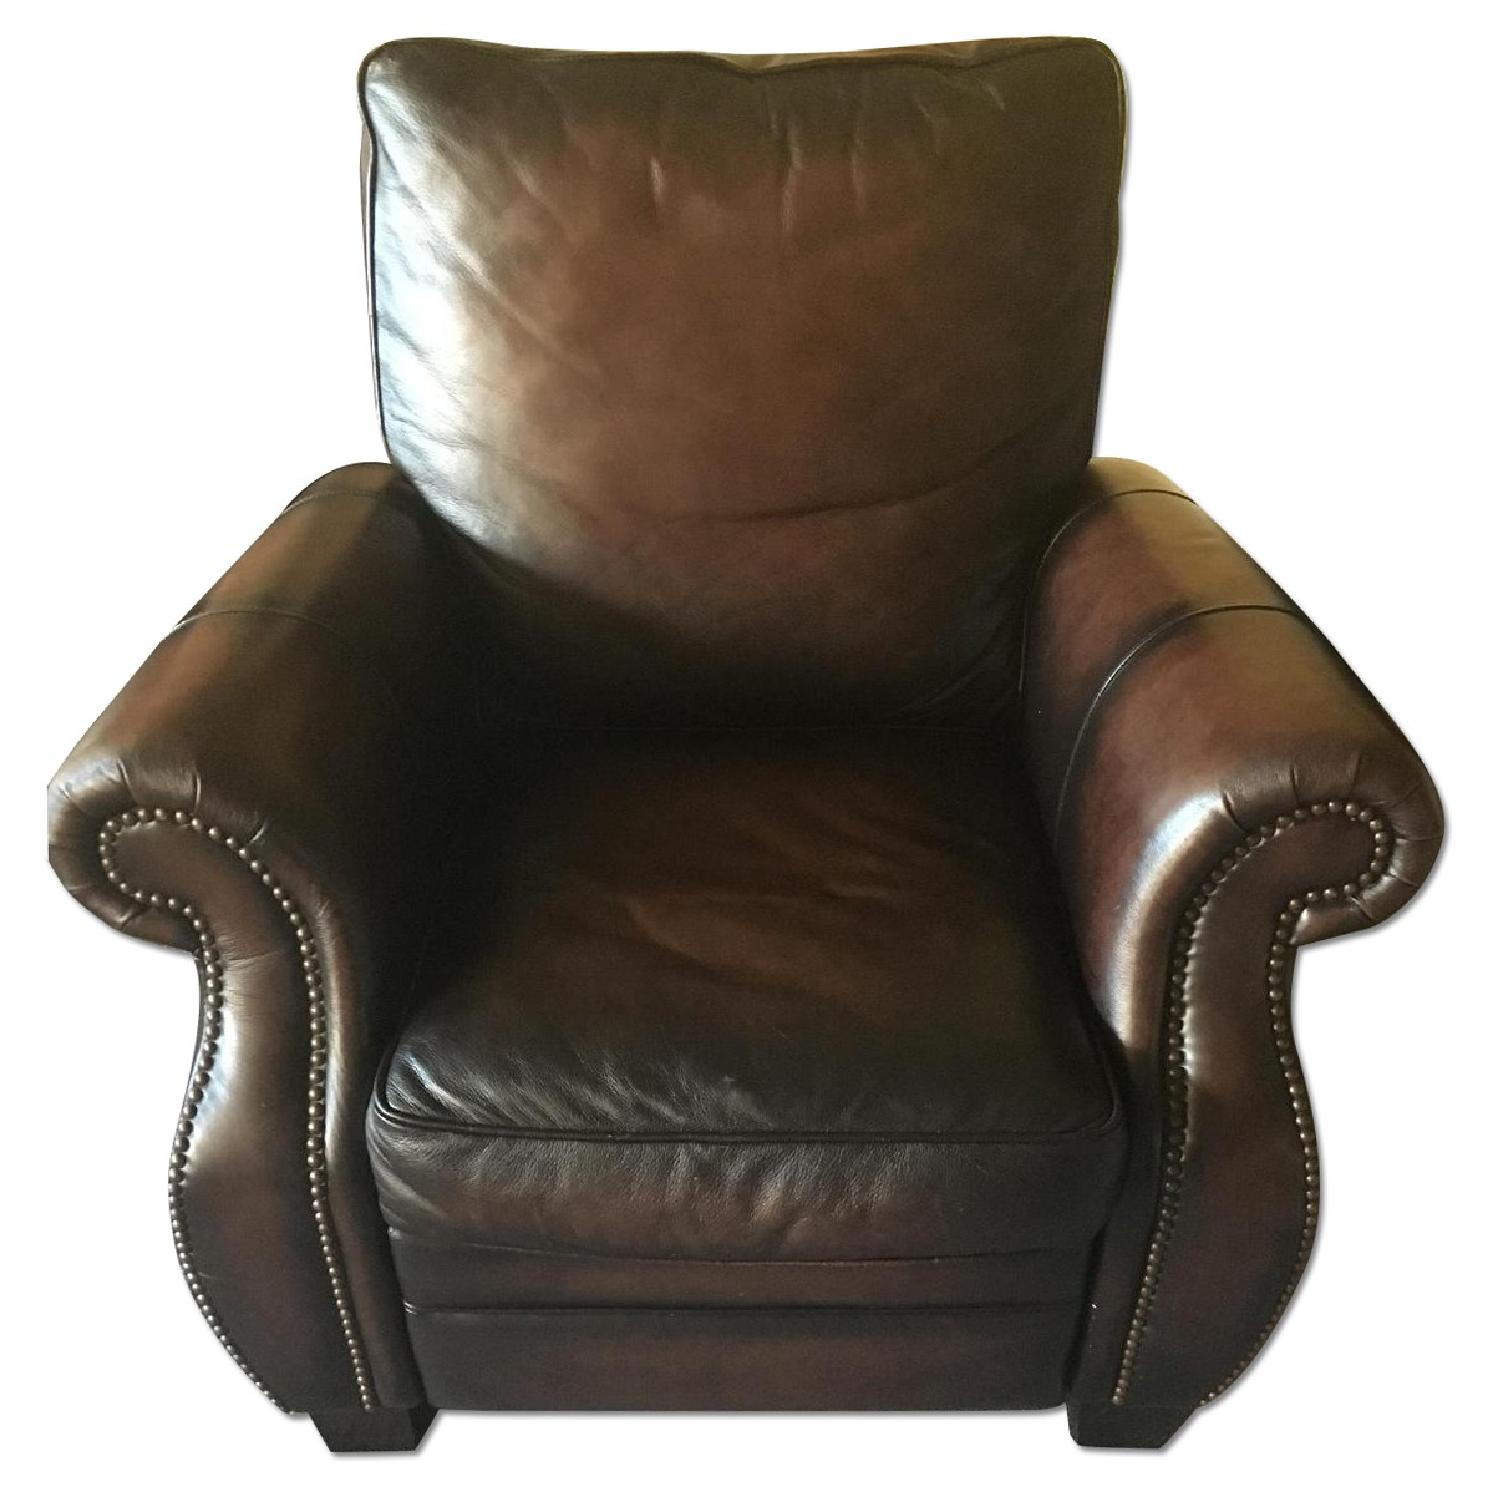 Macy s Brown Leather Recliner Chair AptDeco